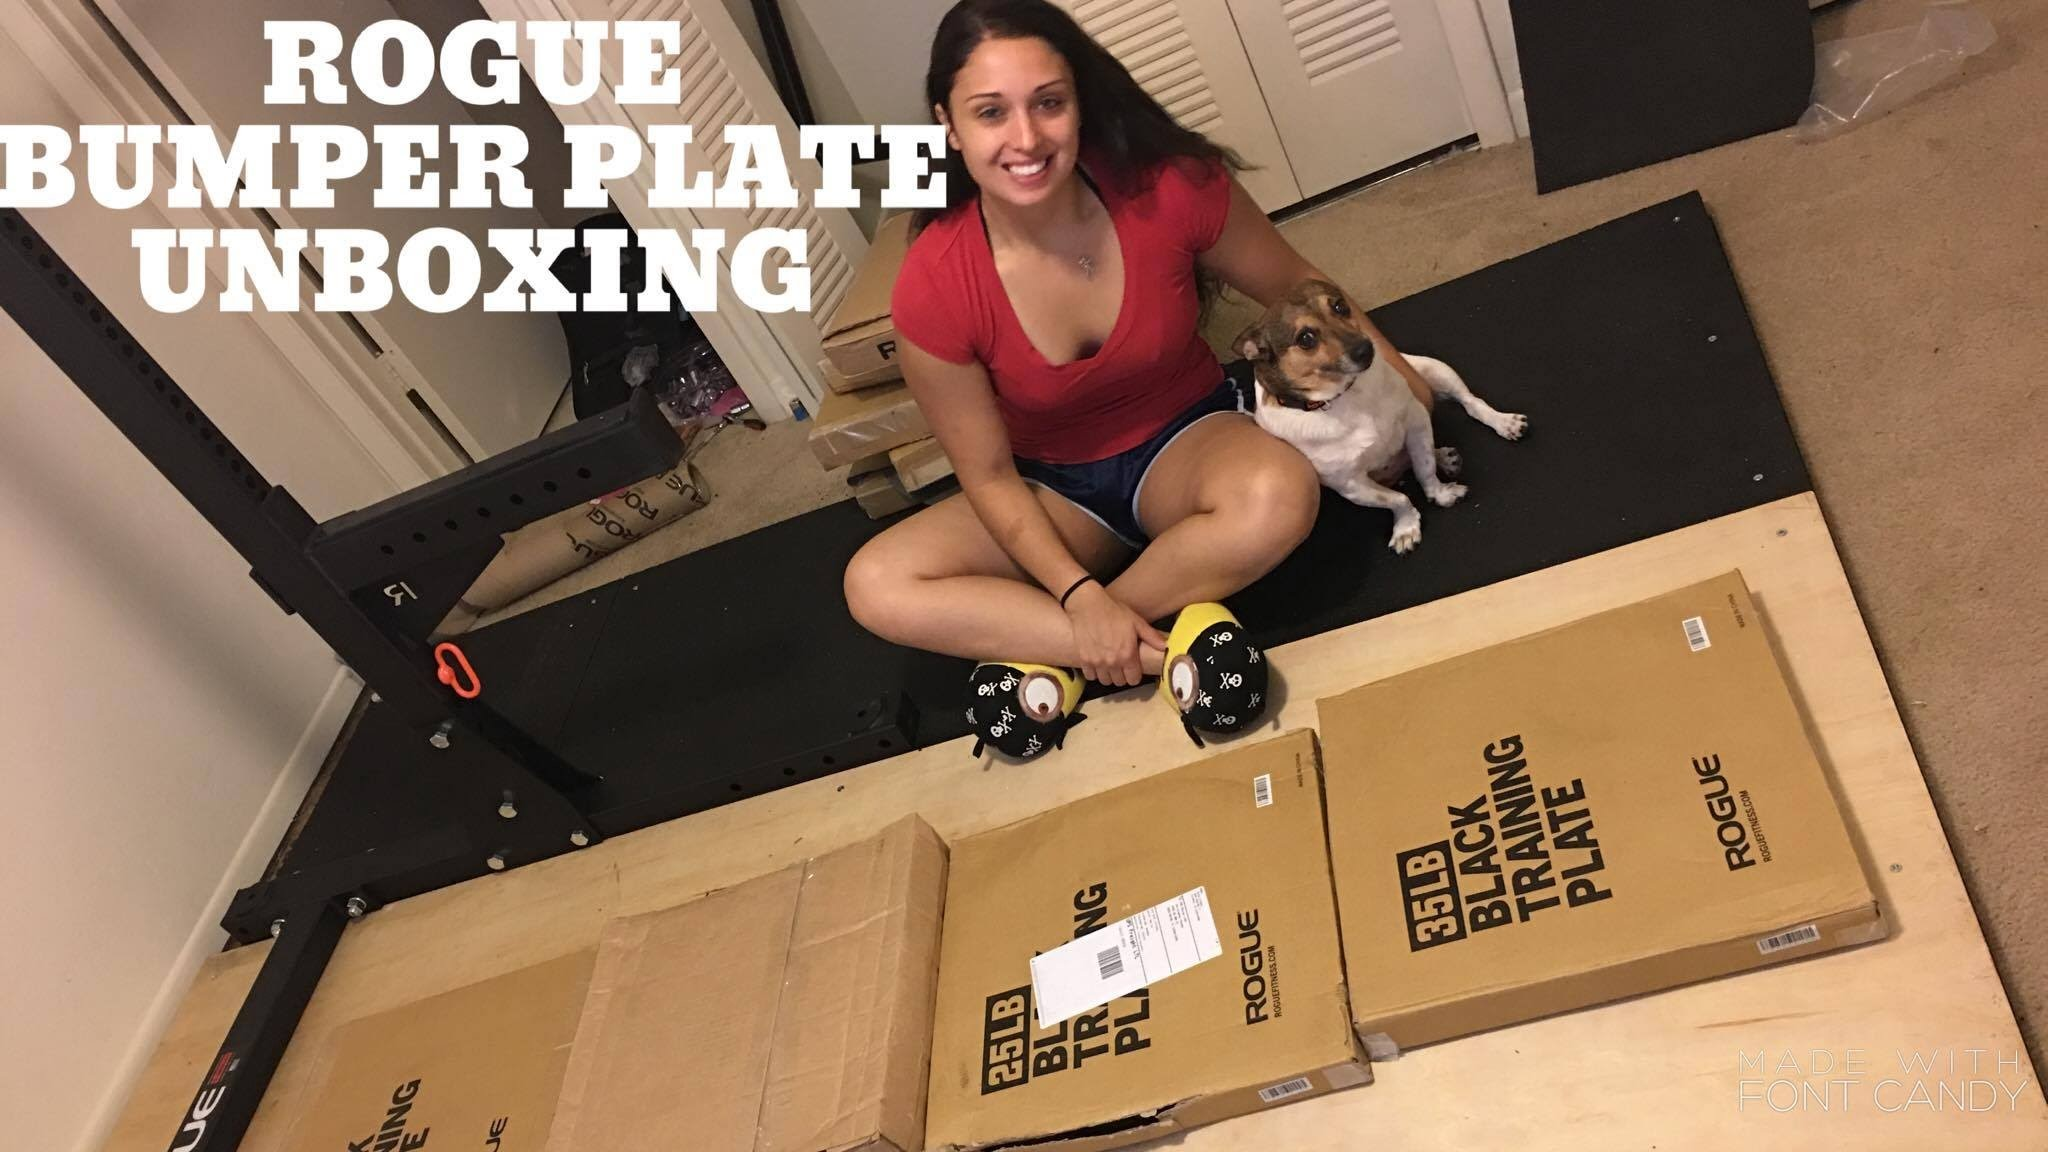 2048x1152 Complete Rogue Training 2.0 Bumper Plate Unboxing l Rogue Fitness Home Gym  - YouTube